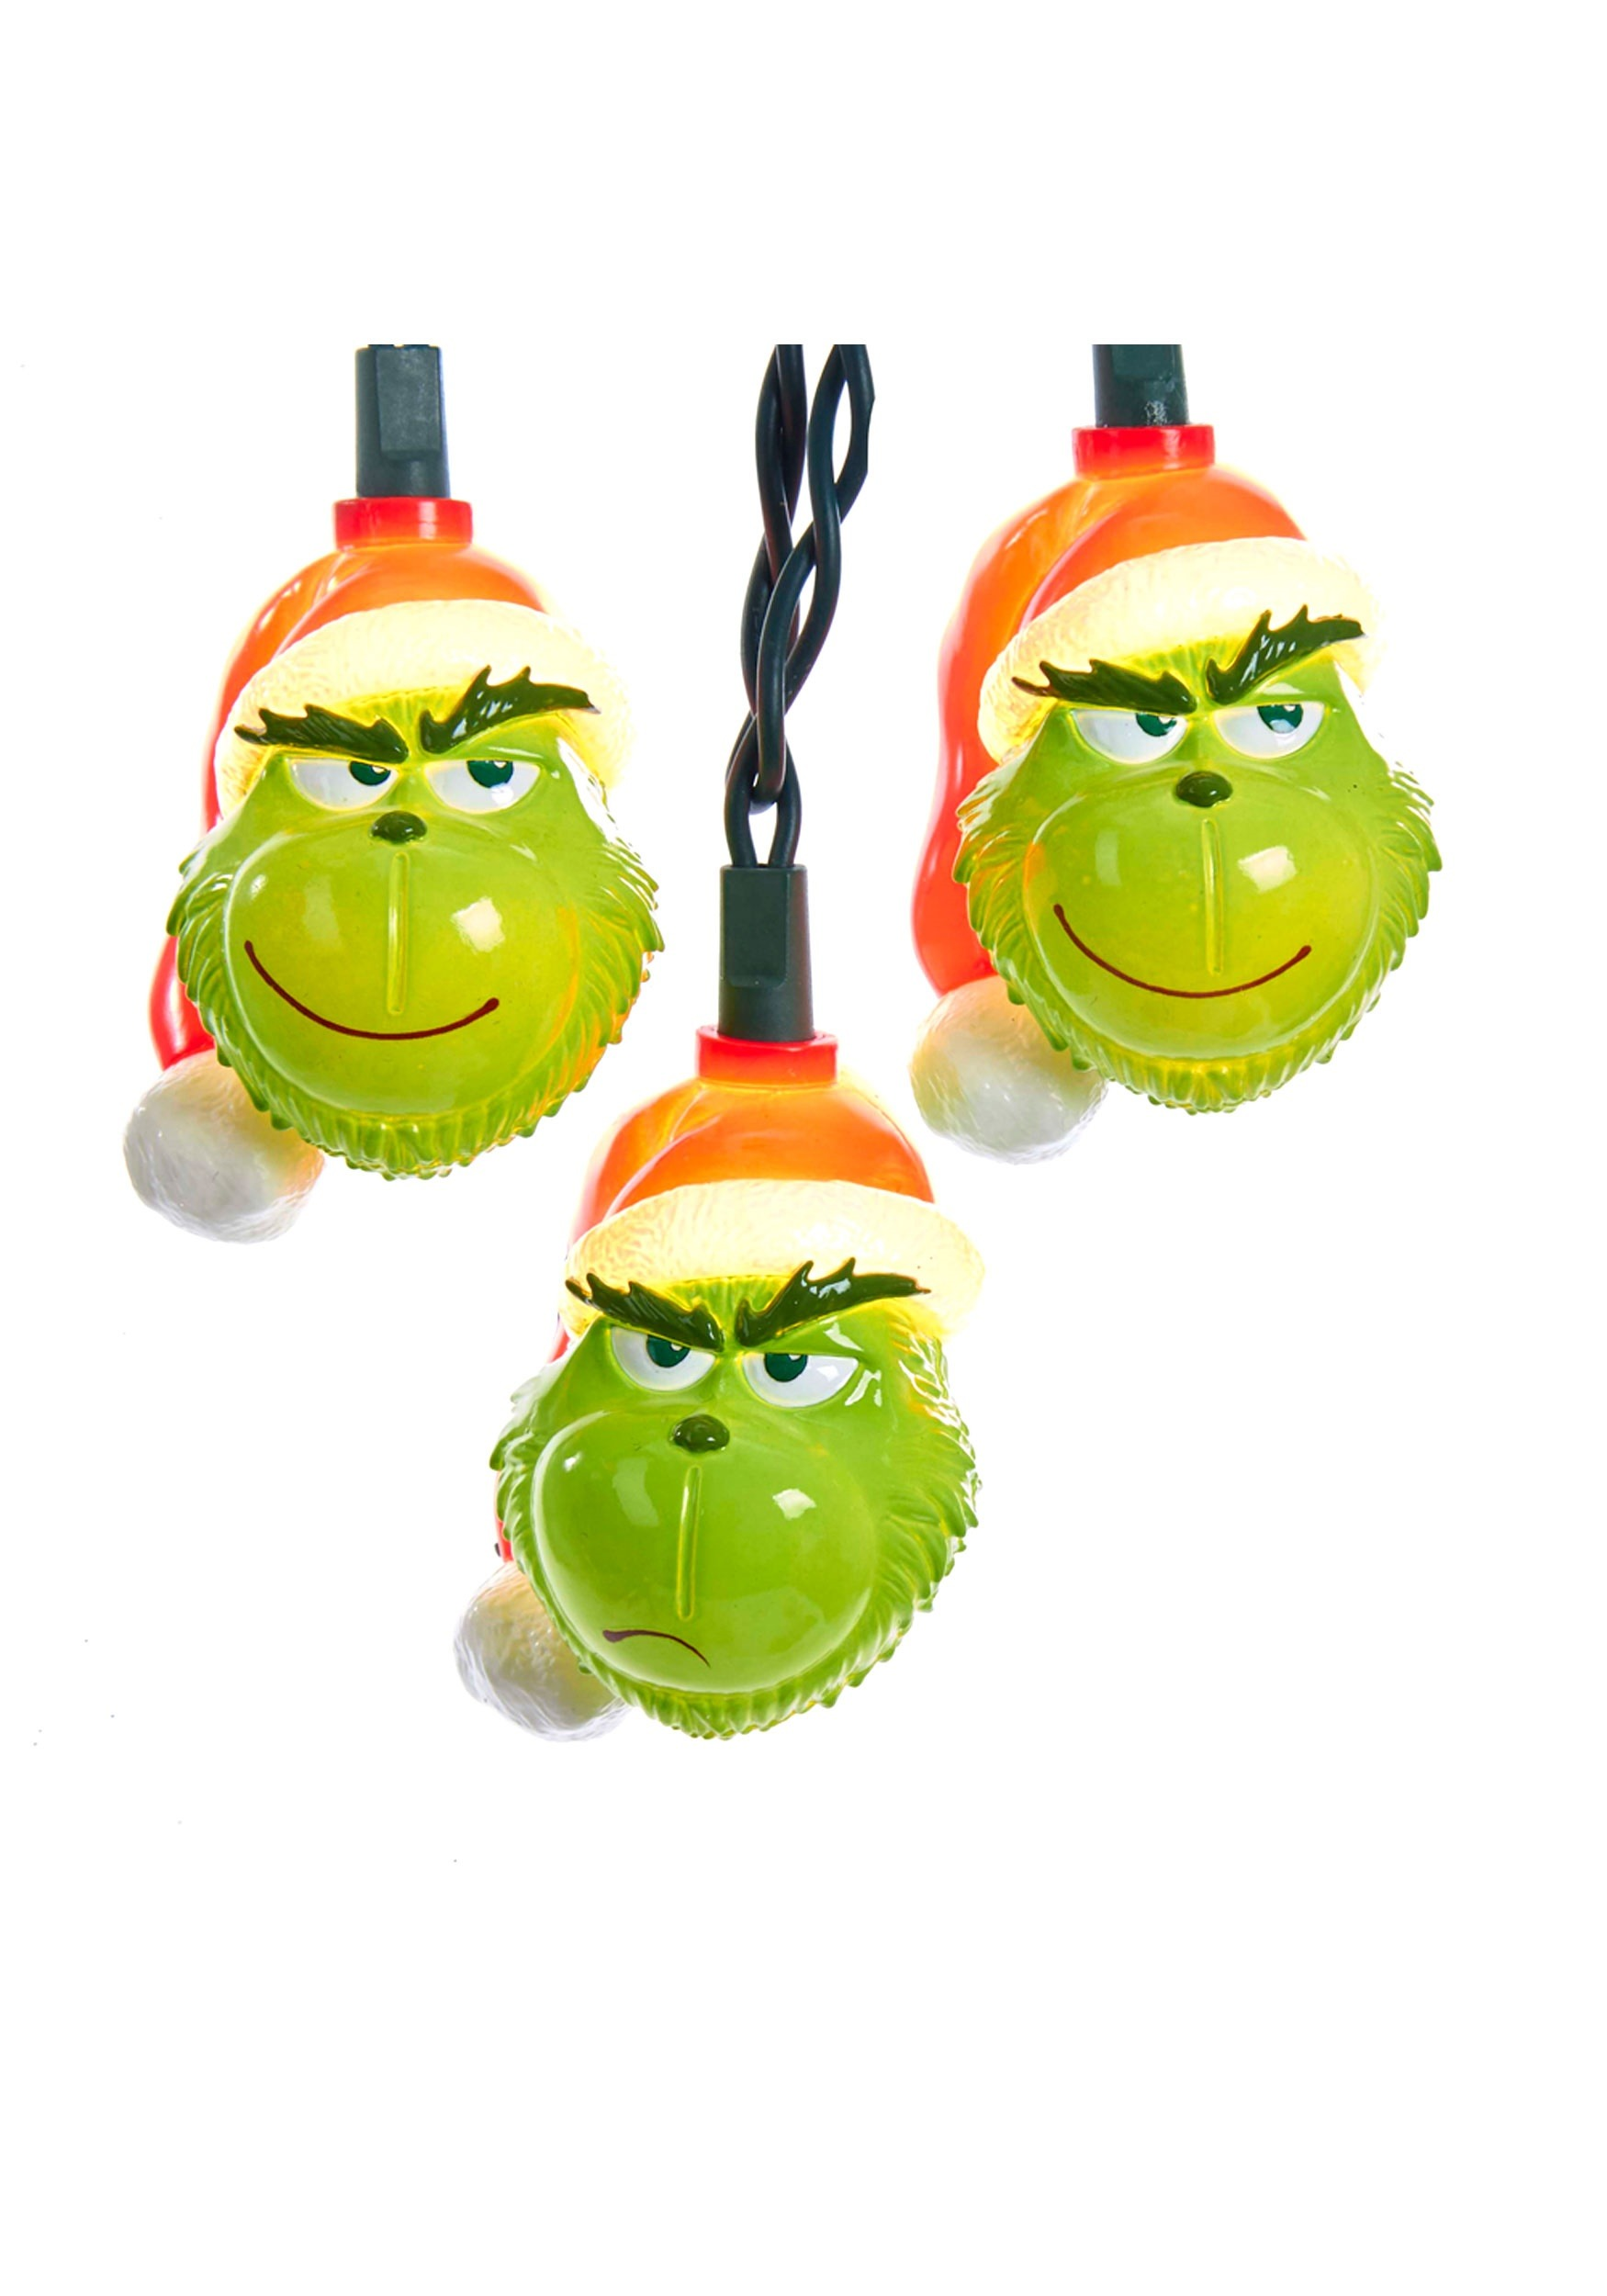 10 piece the grinch light set - Grinch Stole Christmas Lights